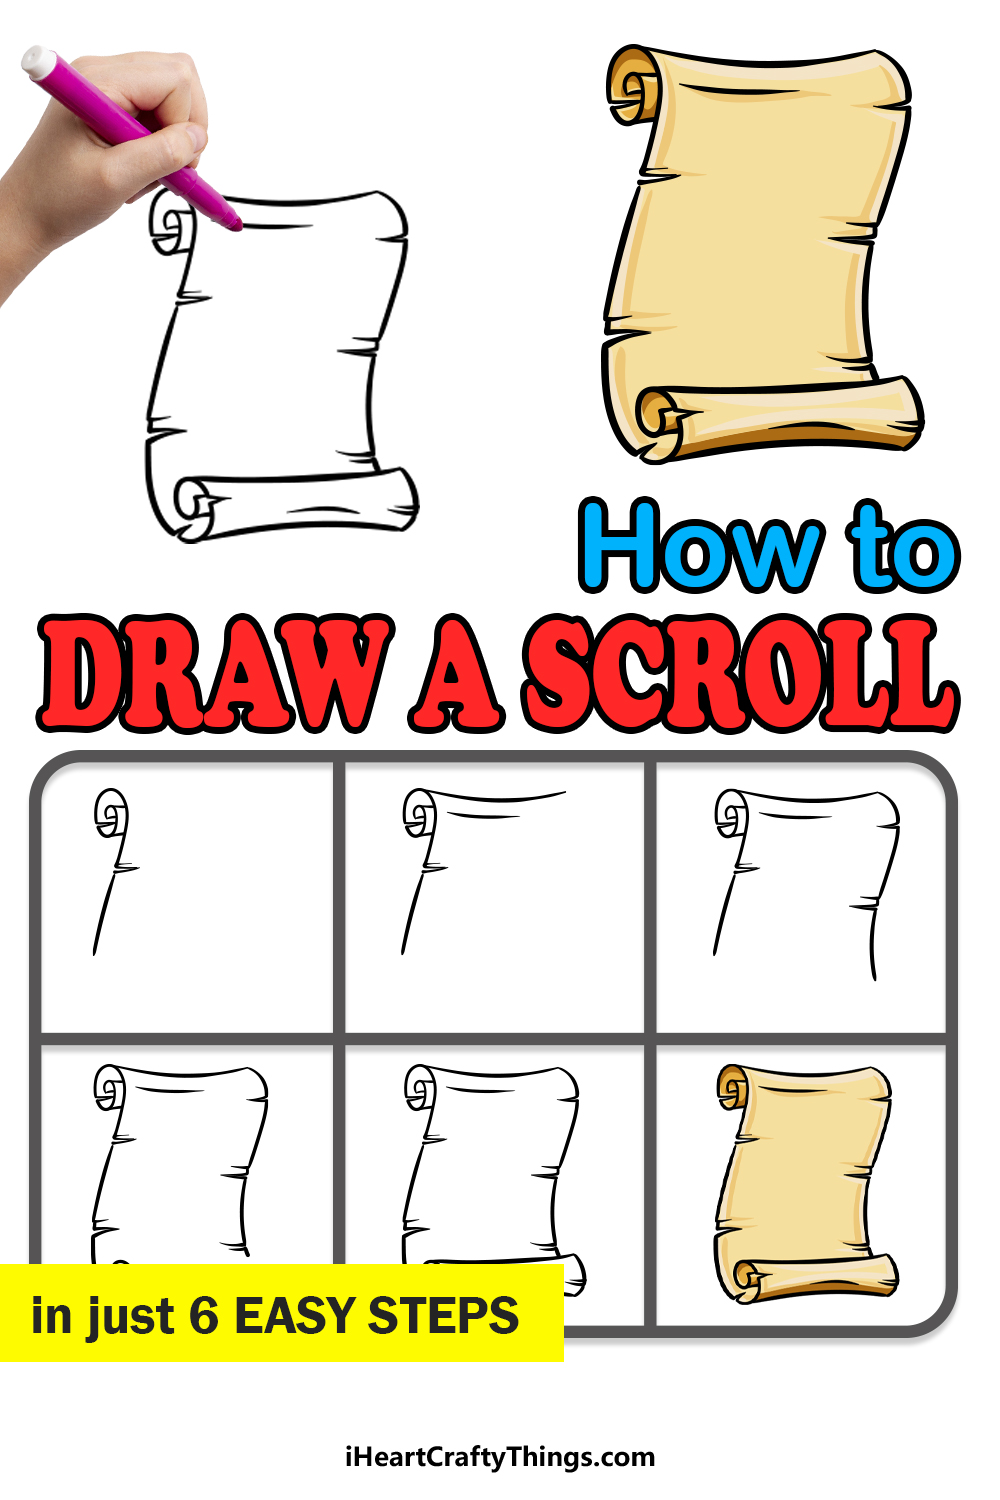 how to draw a scroll in 6 easy steps